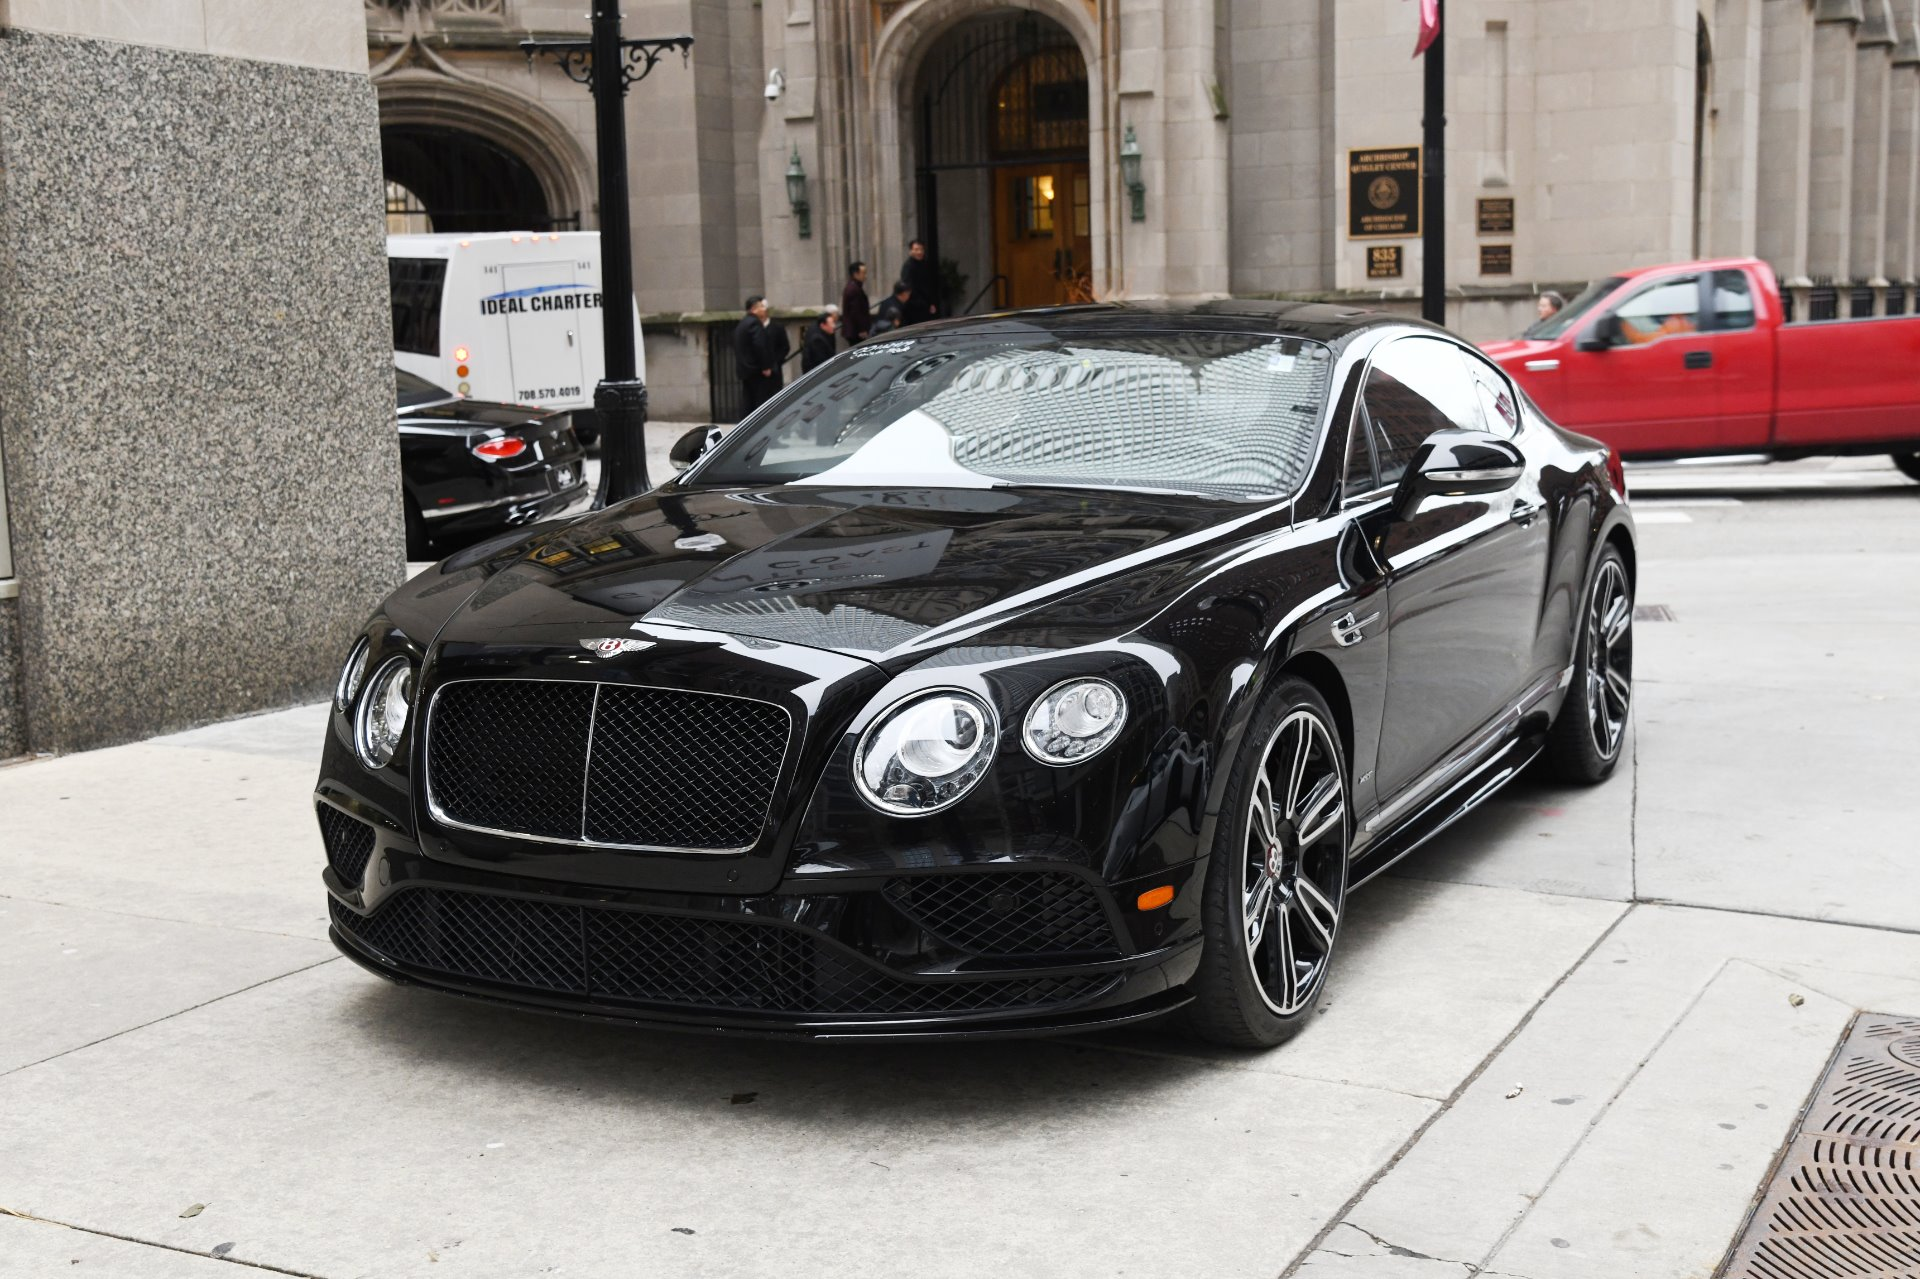 2016 Bentley Continental GT V8 S Stock # GC-MIR89 for sale near ...